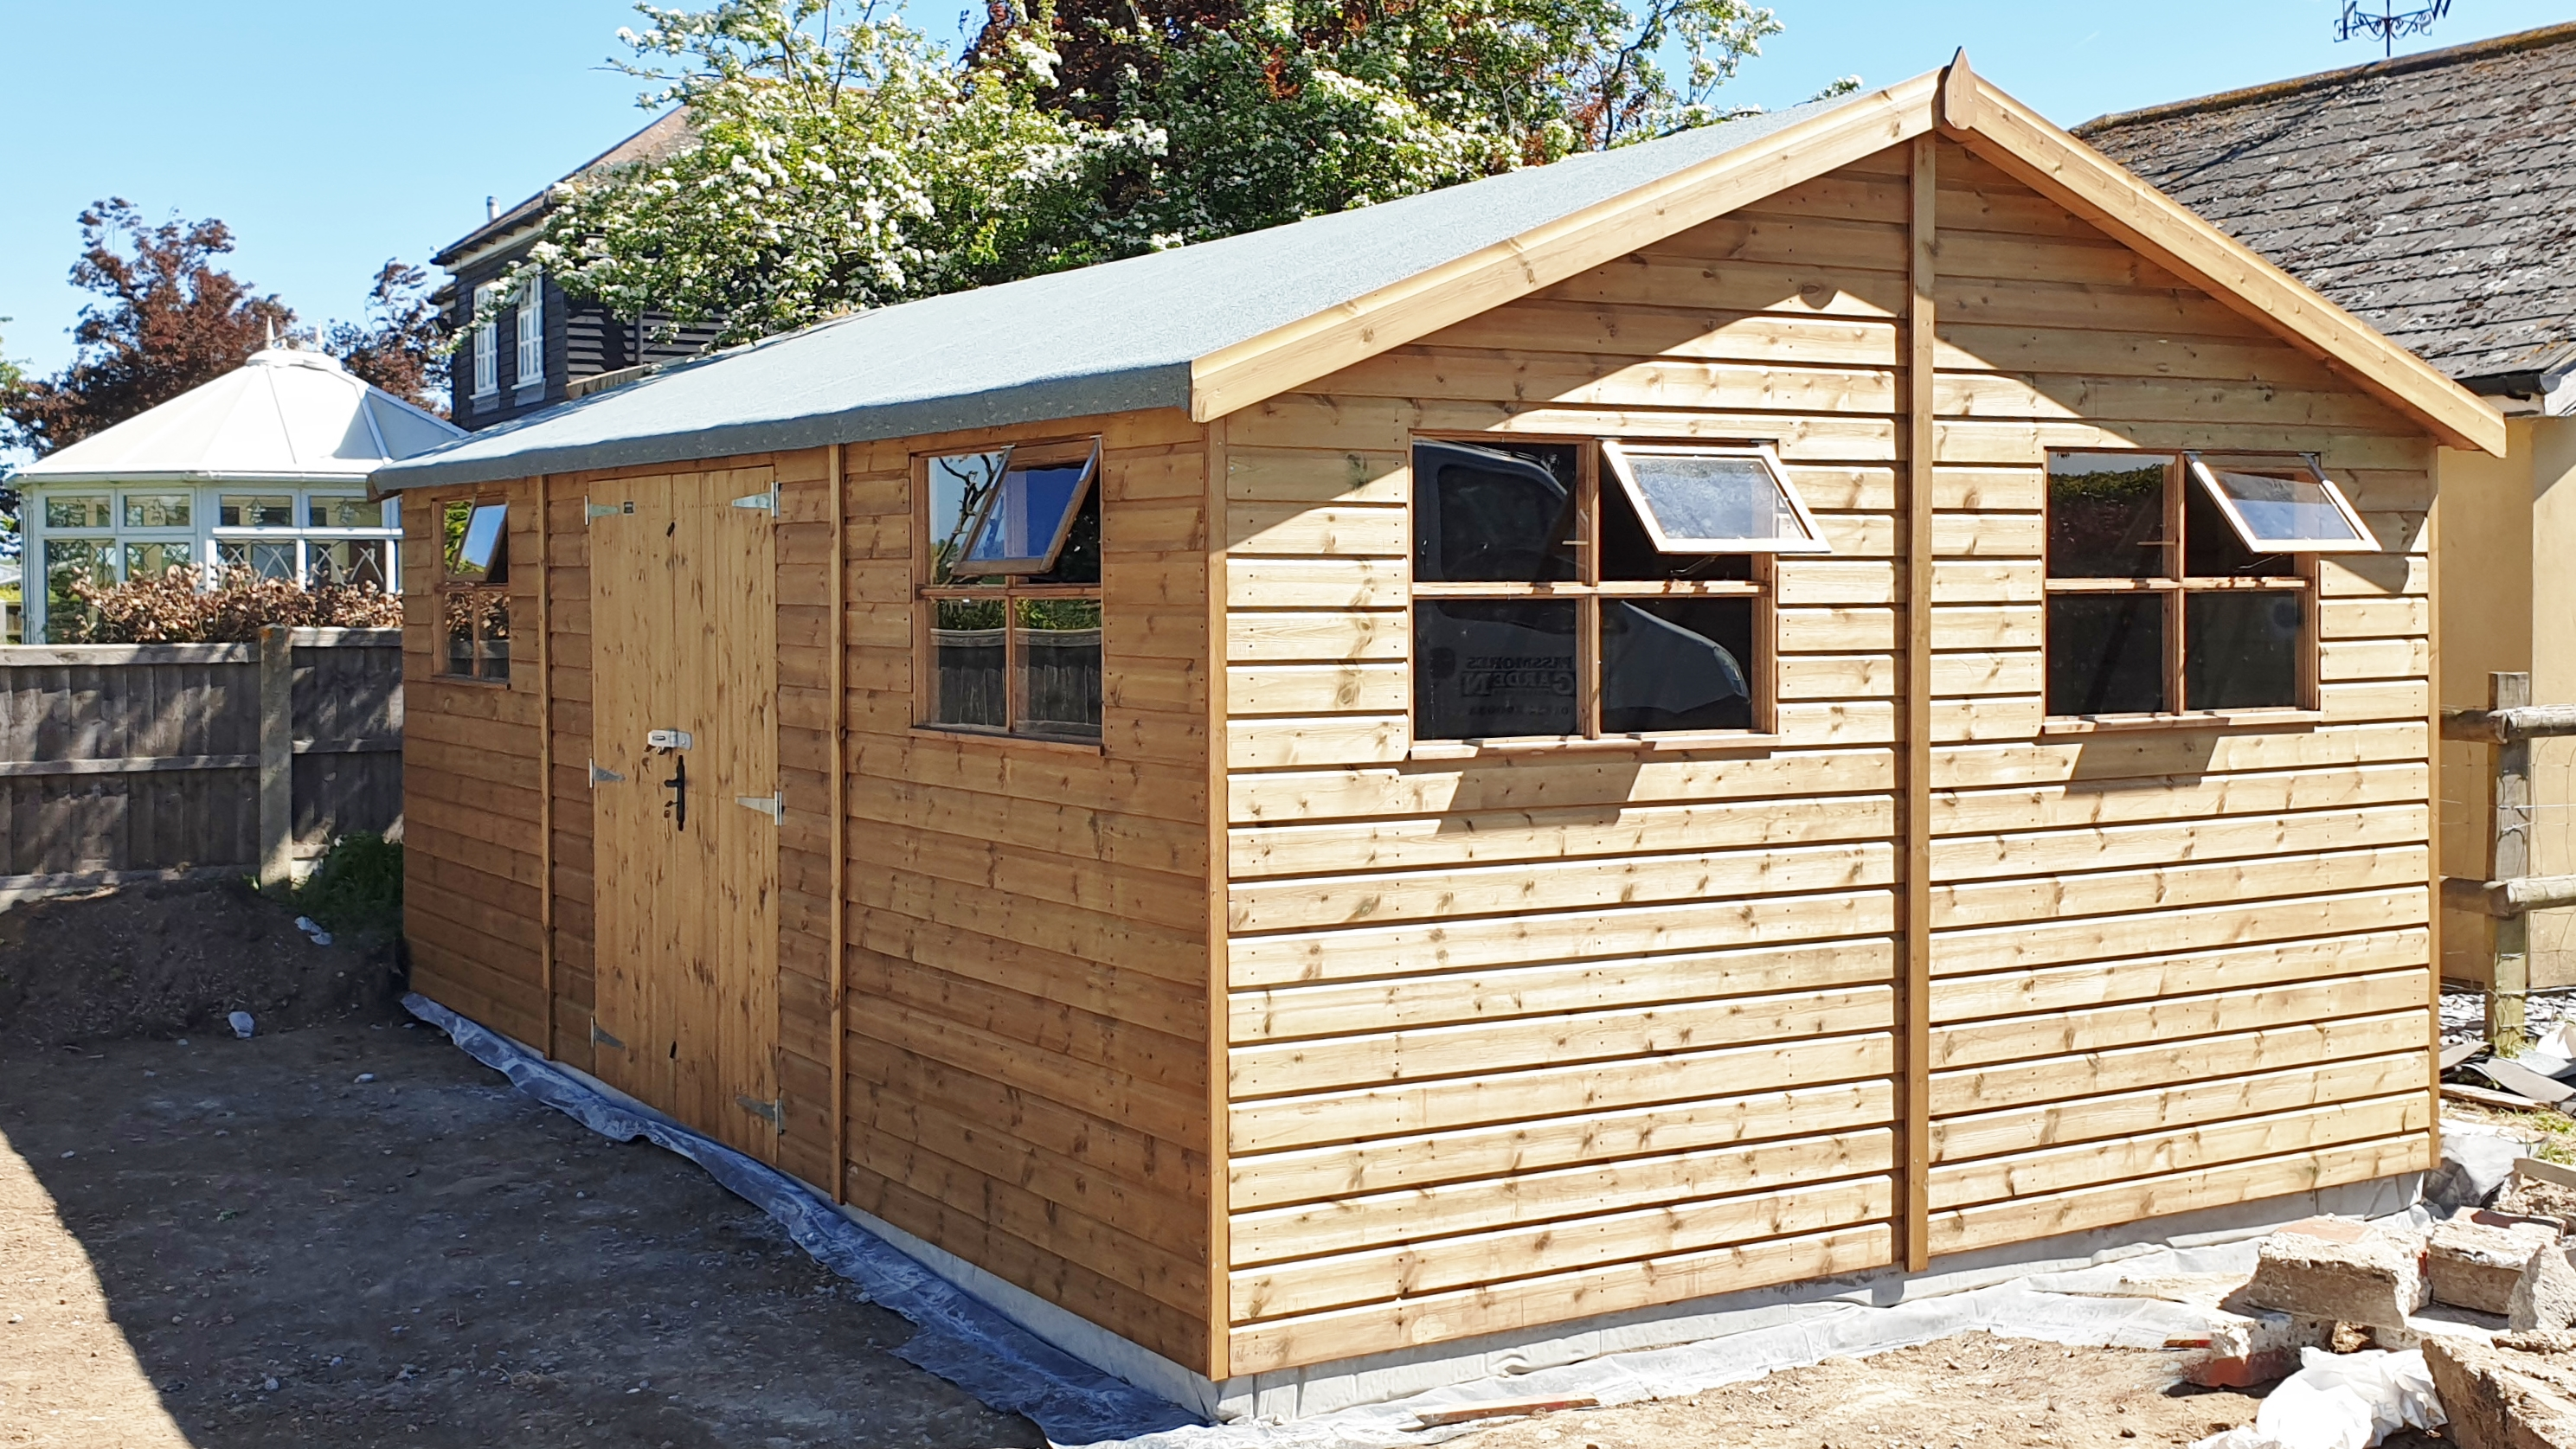 Passmores 12m x 8m Timber Workshop